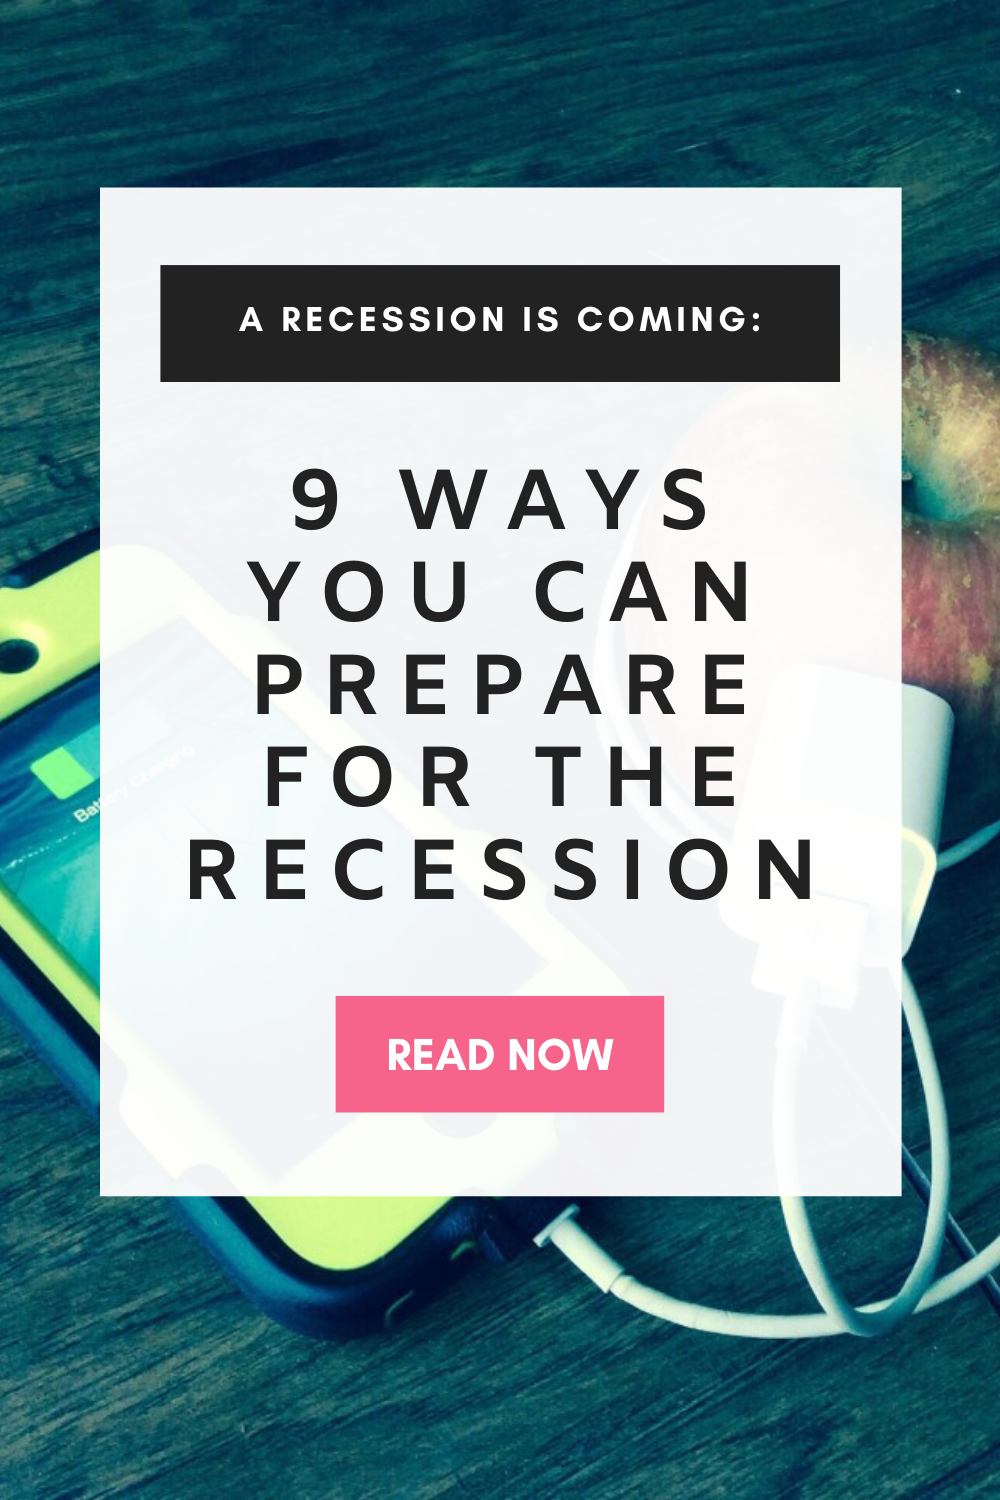 11 Things You Need To Do Today To Recession Proof Your Finances In